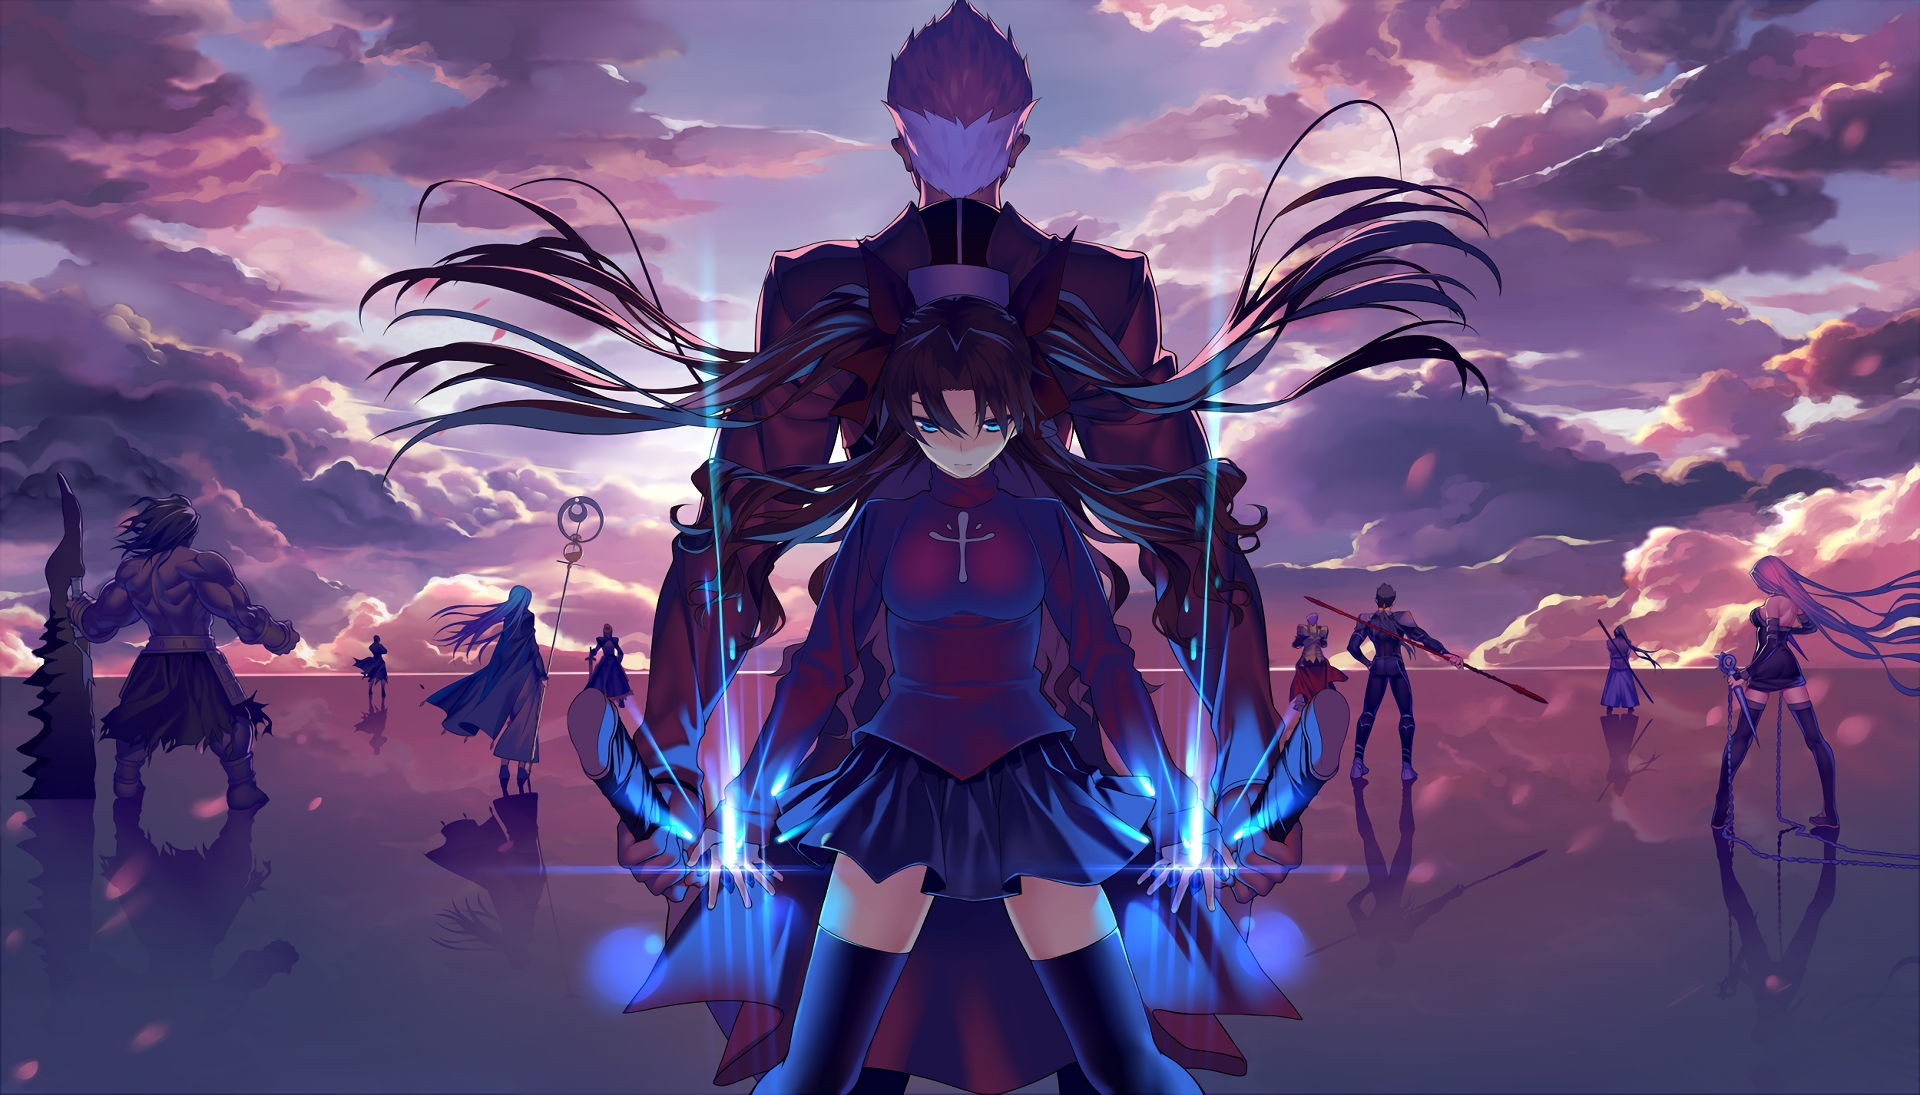 10 Best Fate Stay Night Wallpaper FULL HD 1080p For PC Desktop